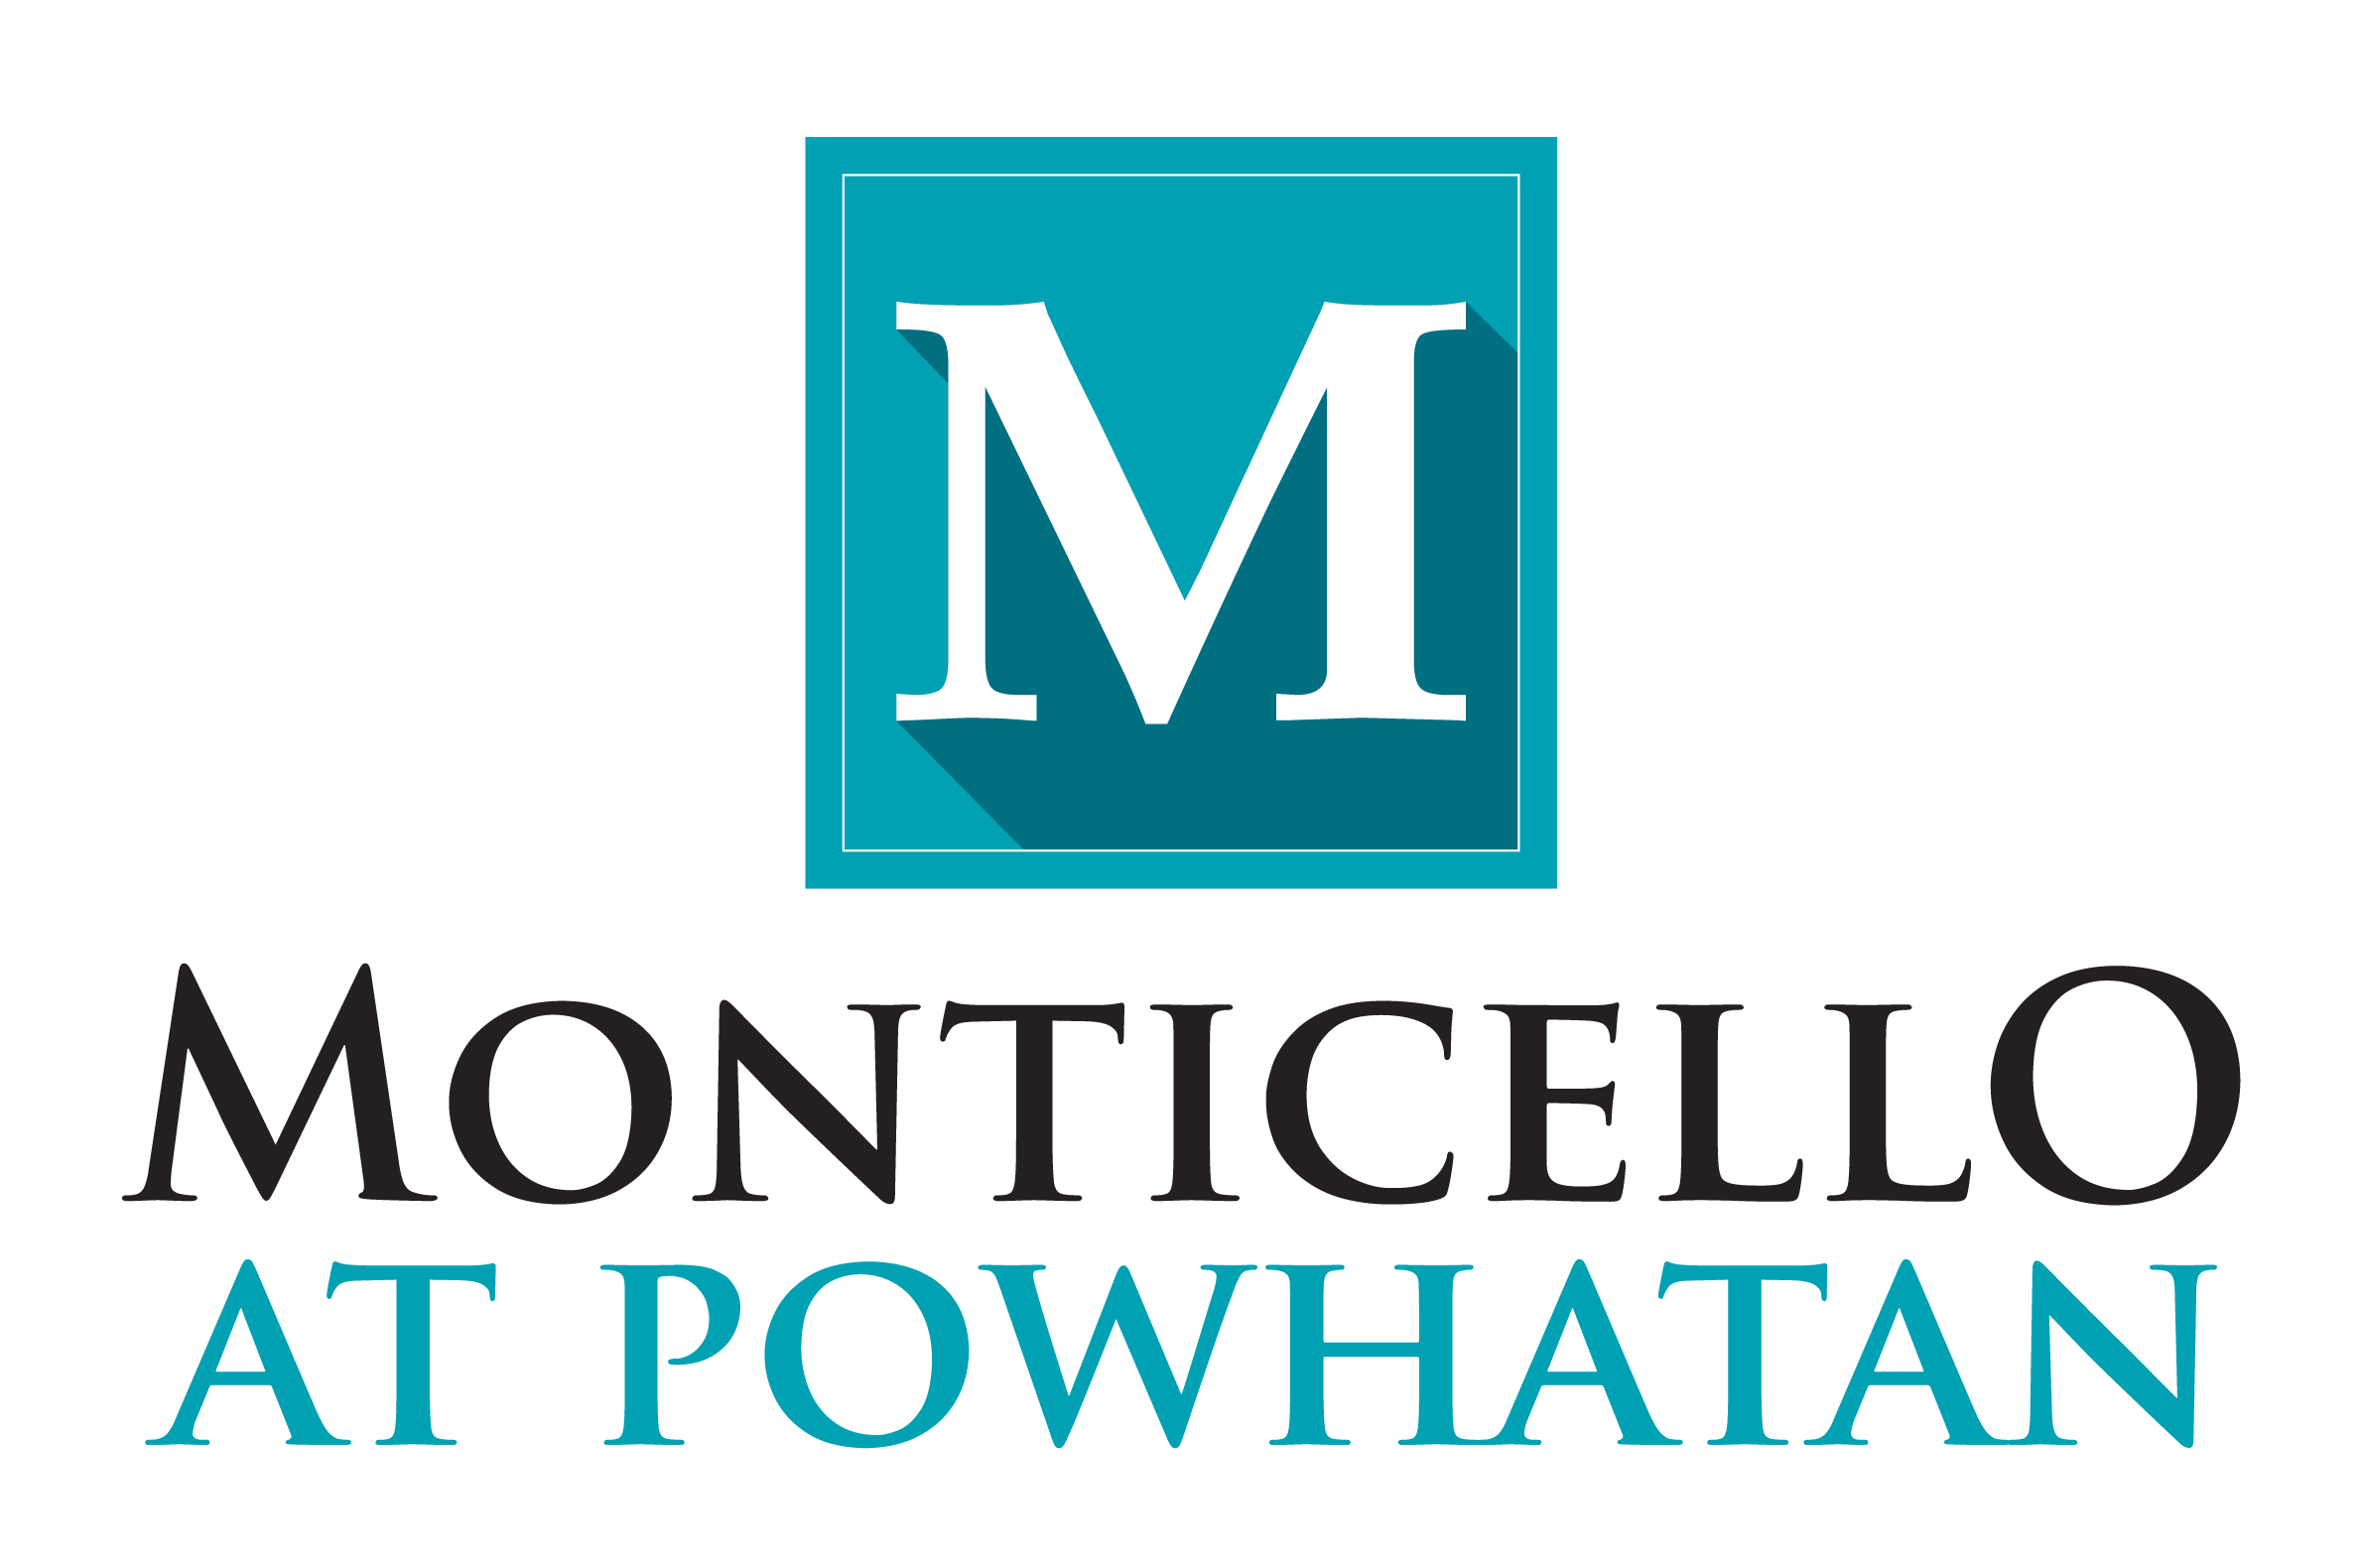 Monticello at Powhatan Apartments